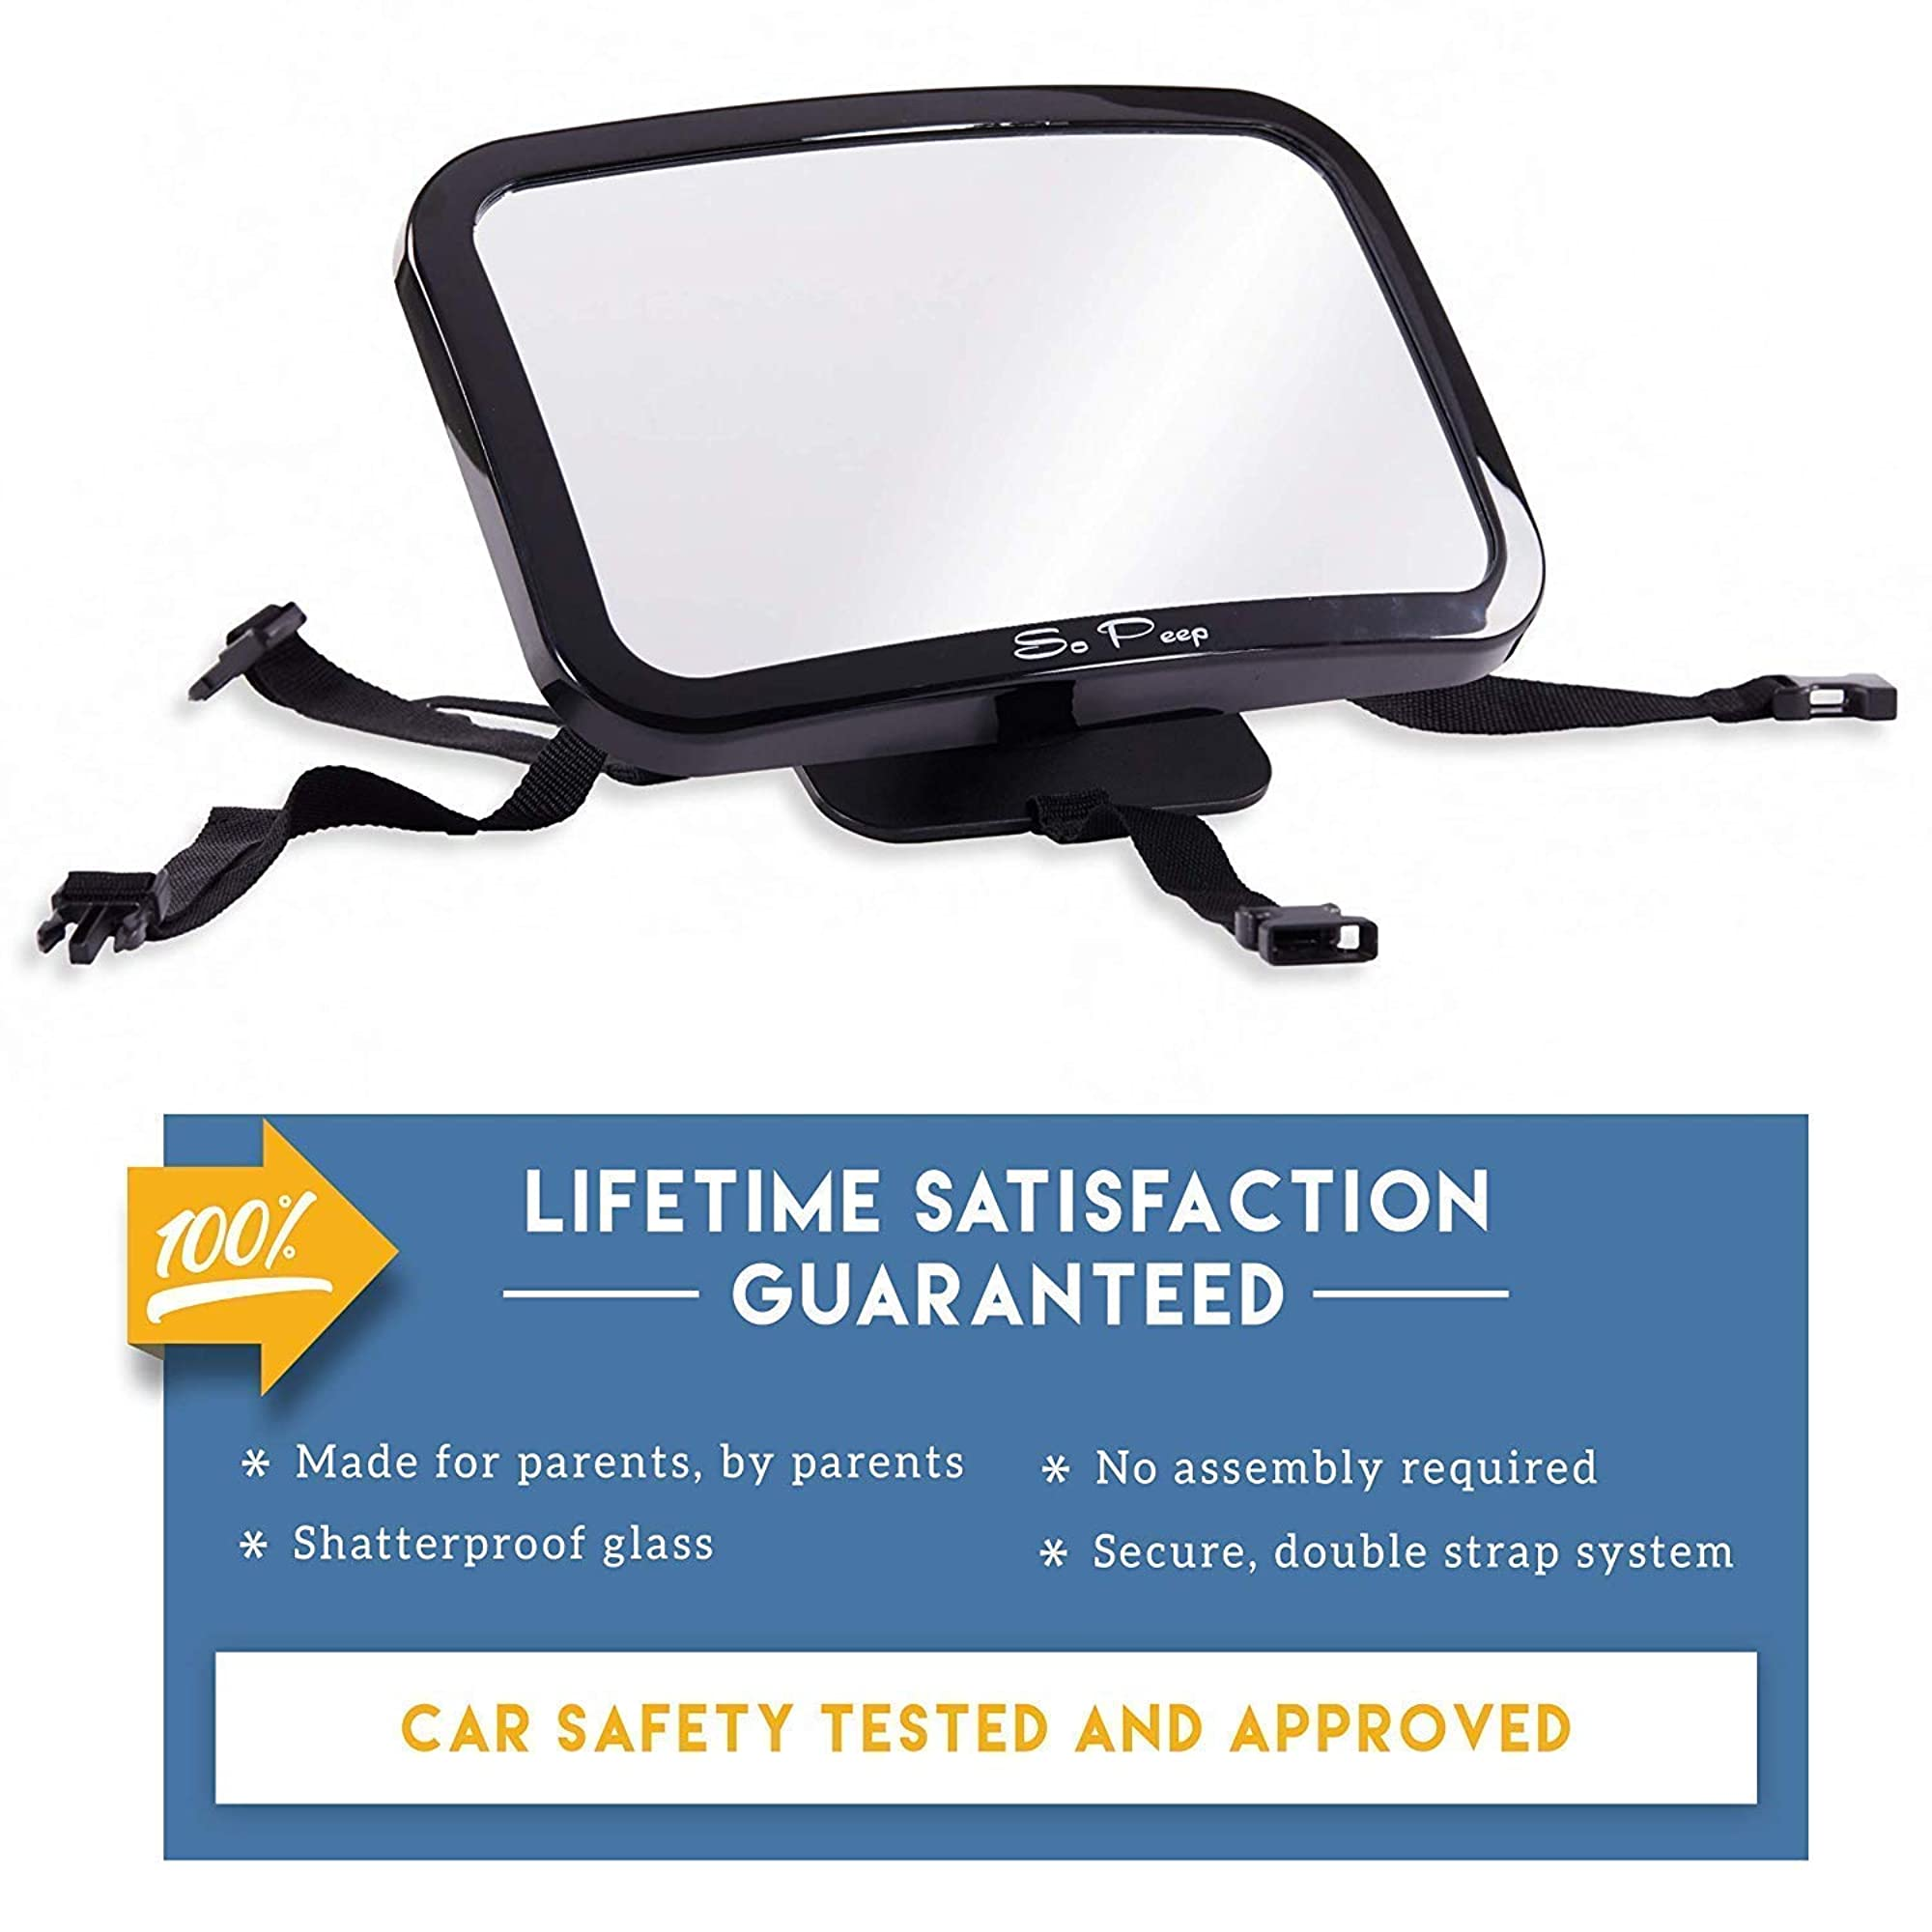 Baby Backseat Rear View Mirror For Car